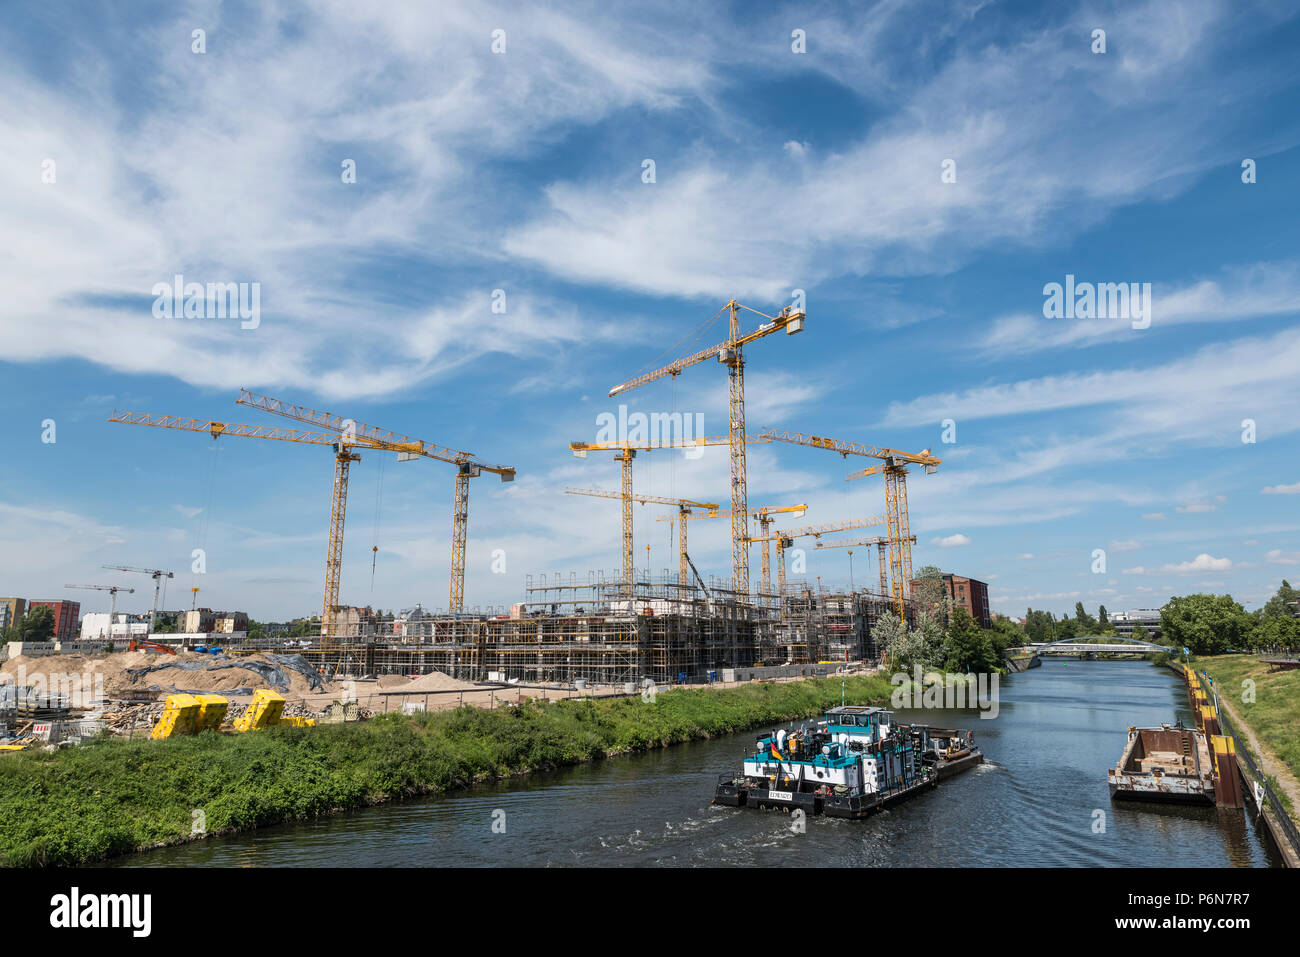 BERLIN, GERMANY, MAY 24, 2018: Many operating cranes at building site in Berlin, beside a canal. Stock Photo